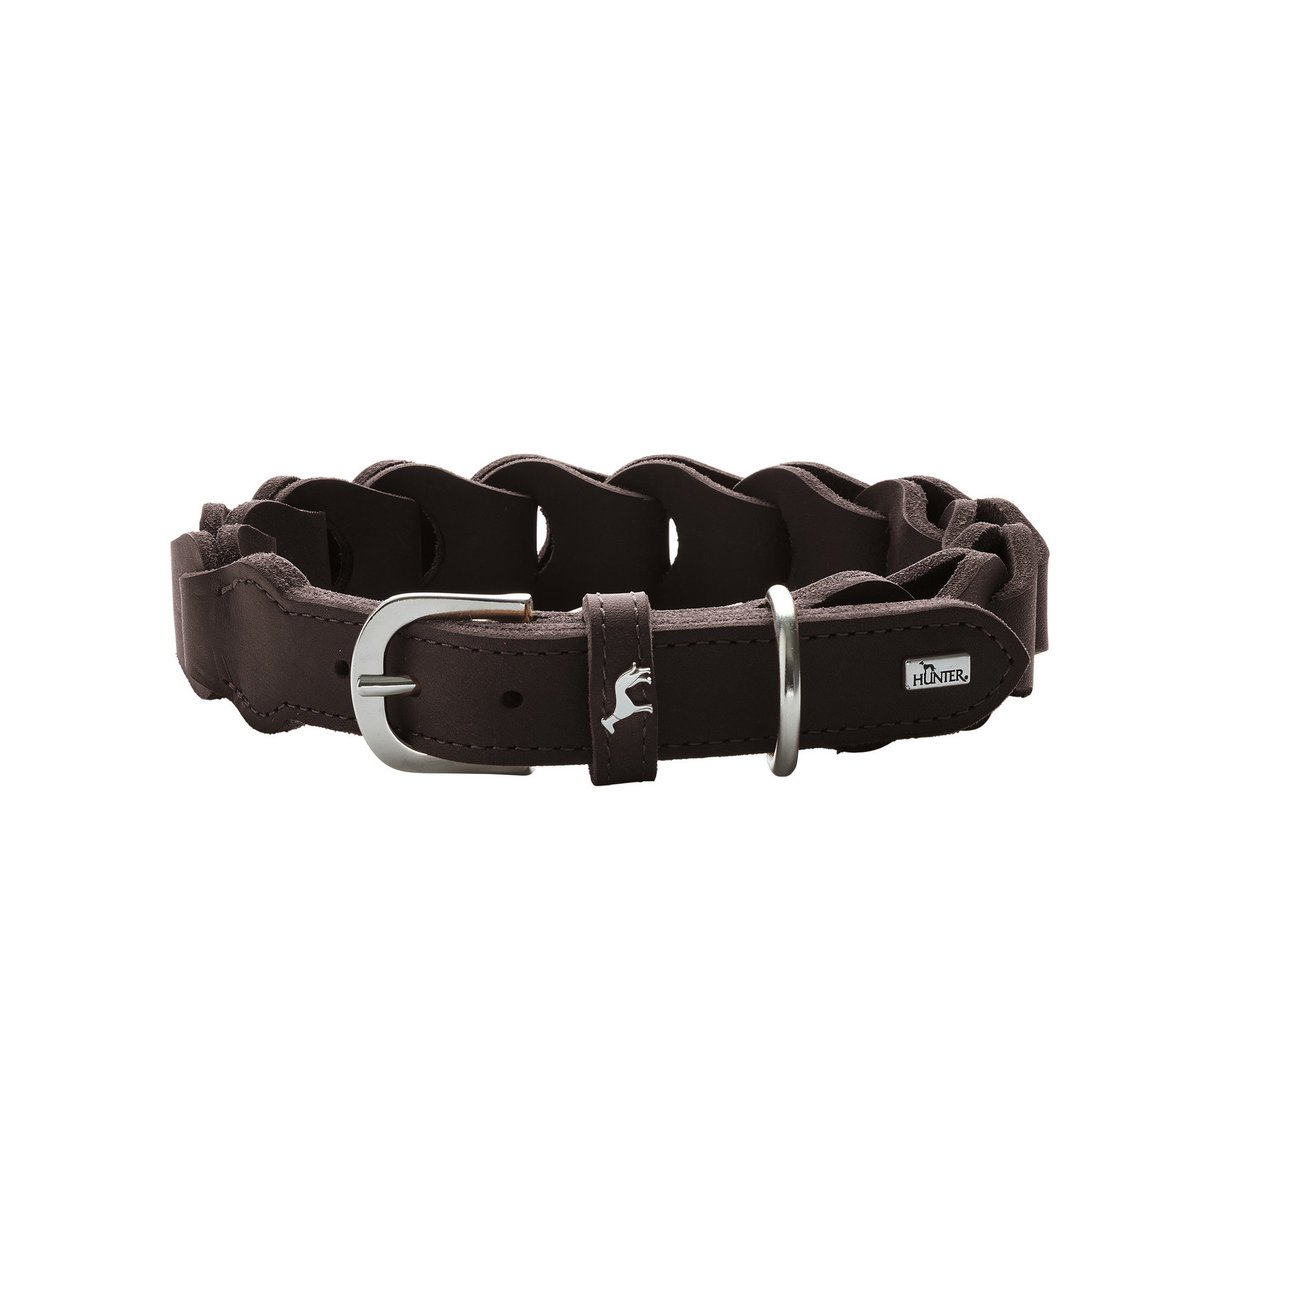 Hunter Hundehalsband Solid Education Chain 68632, Bild 5